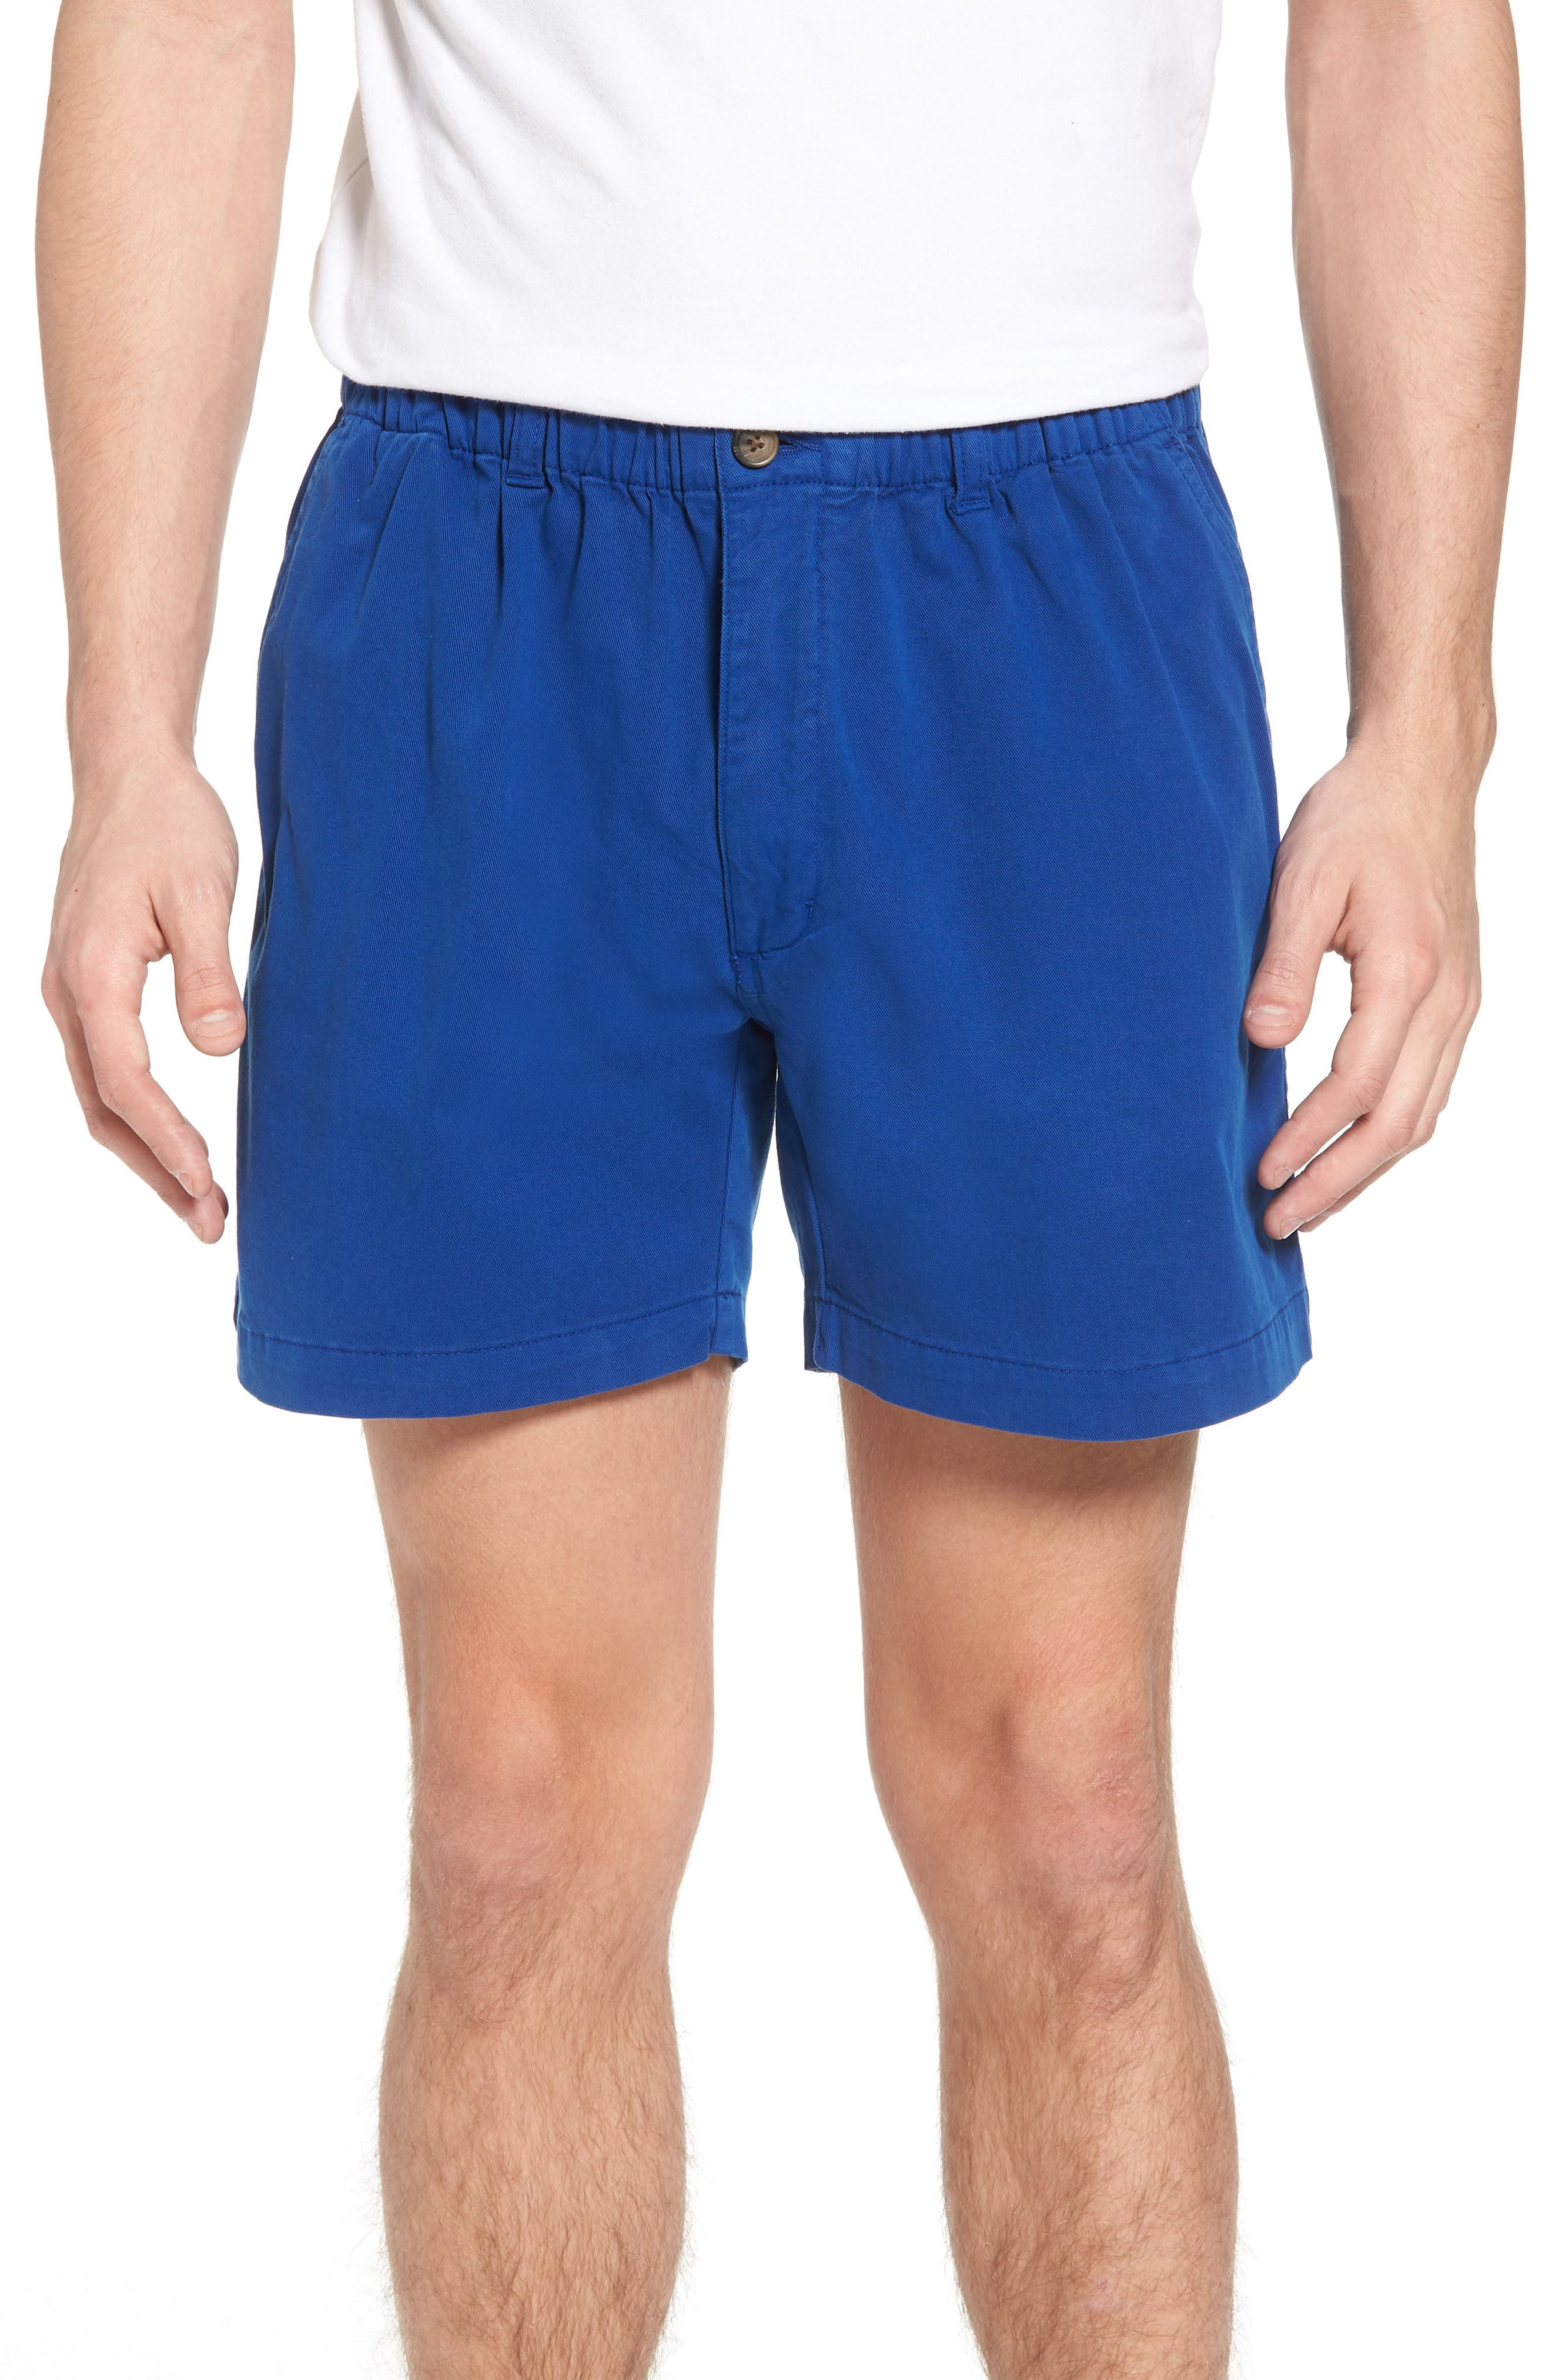 Snappers Elastic Waist 5.5 Inch Stretch Shorts,                             Main thumbnail 1, color,                             PREP BLUE